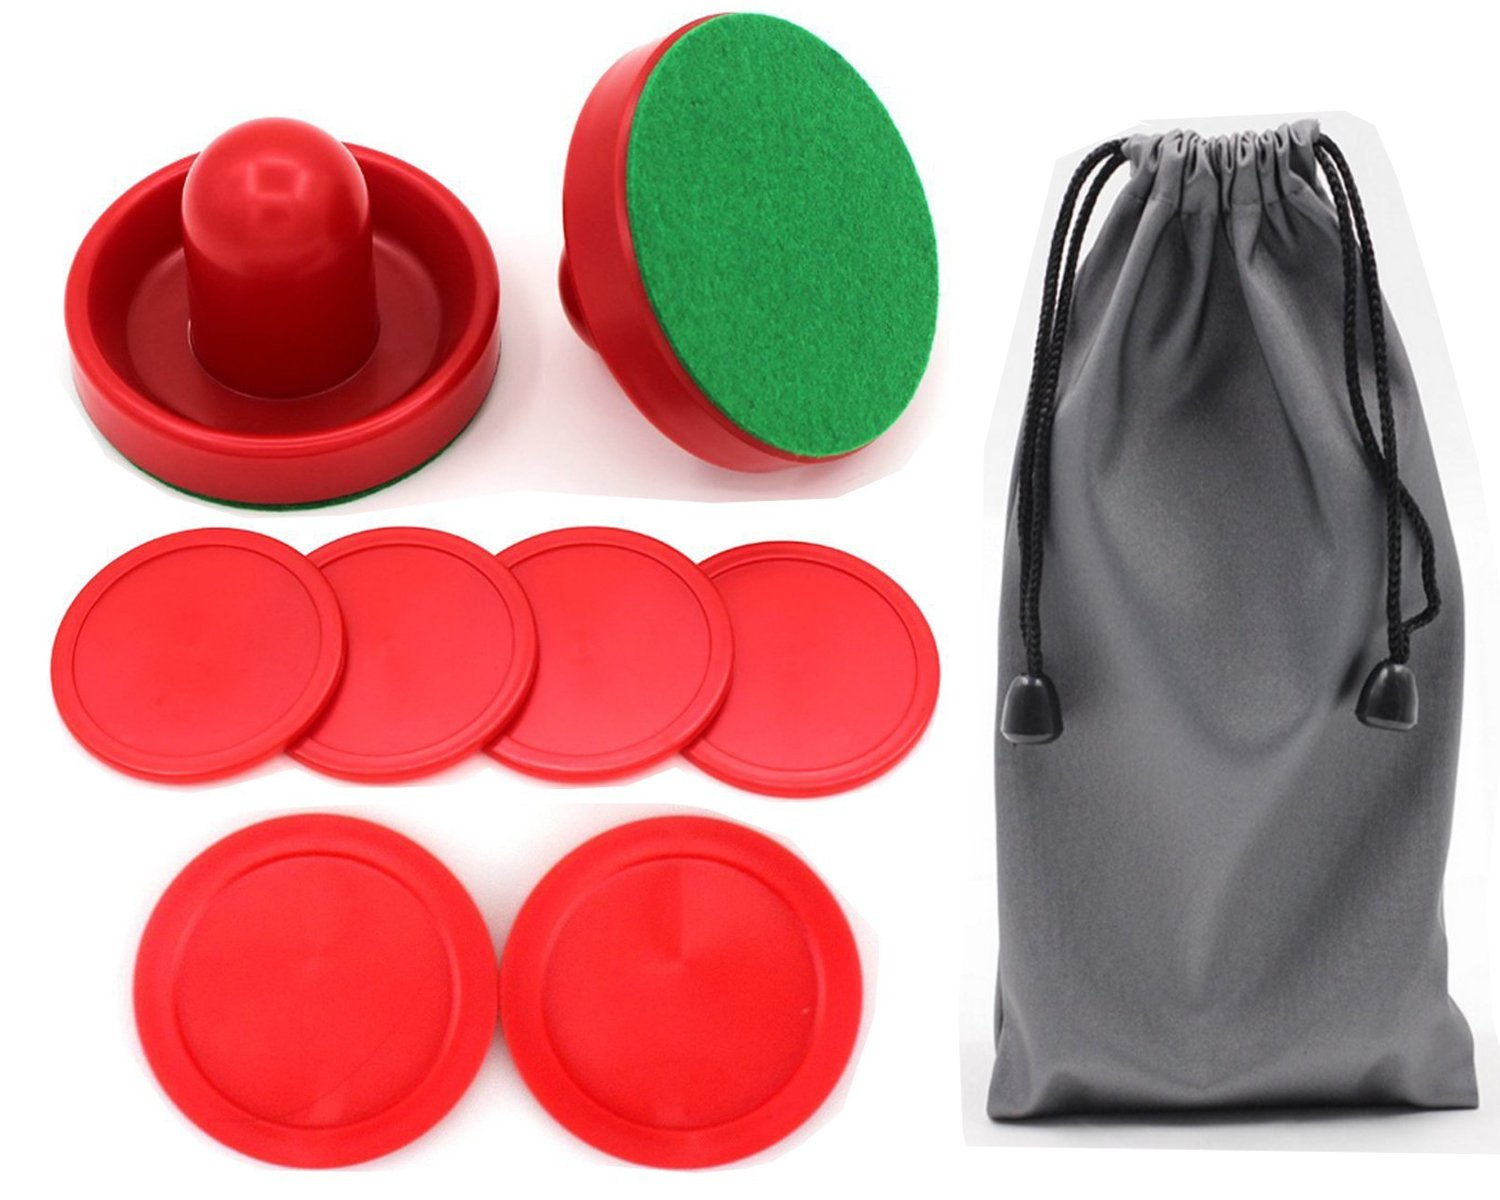 Qtimal Home Standard Air Hockey Paddles and 2 Size Pucks Small Size for Kids Large Size for Adult Great Goal Handles Pushers Replacement Accessories for Game Tables 2 Striker 6 Puck Pack